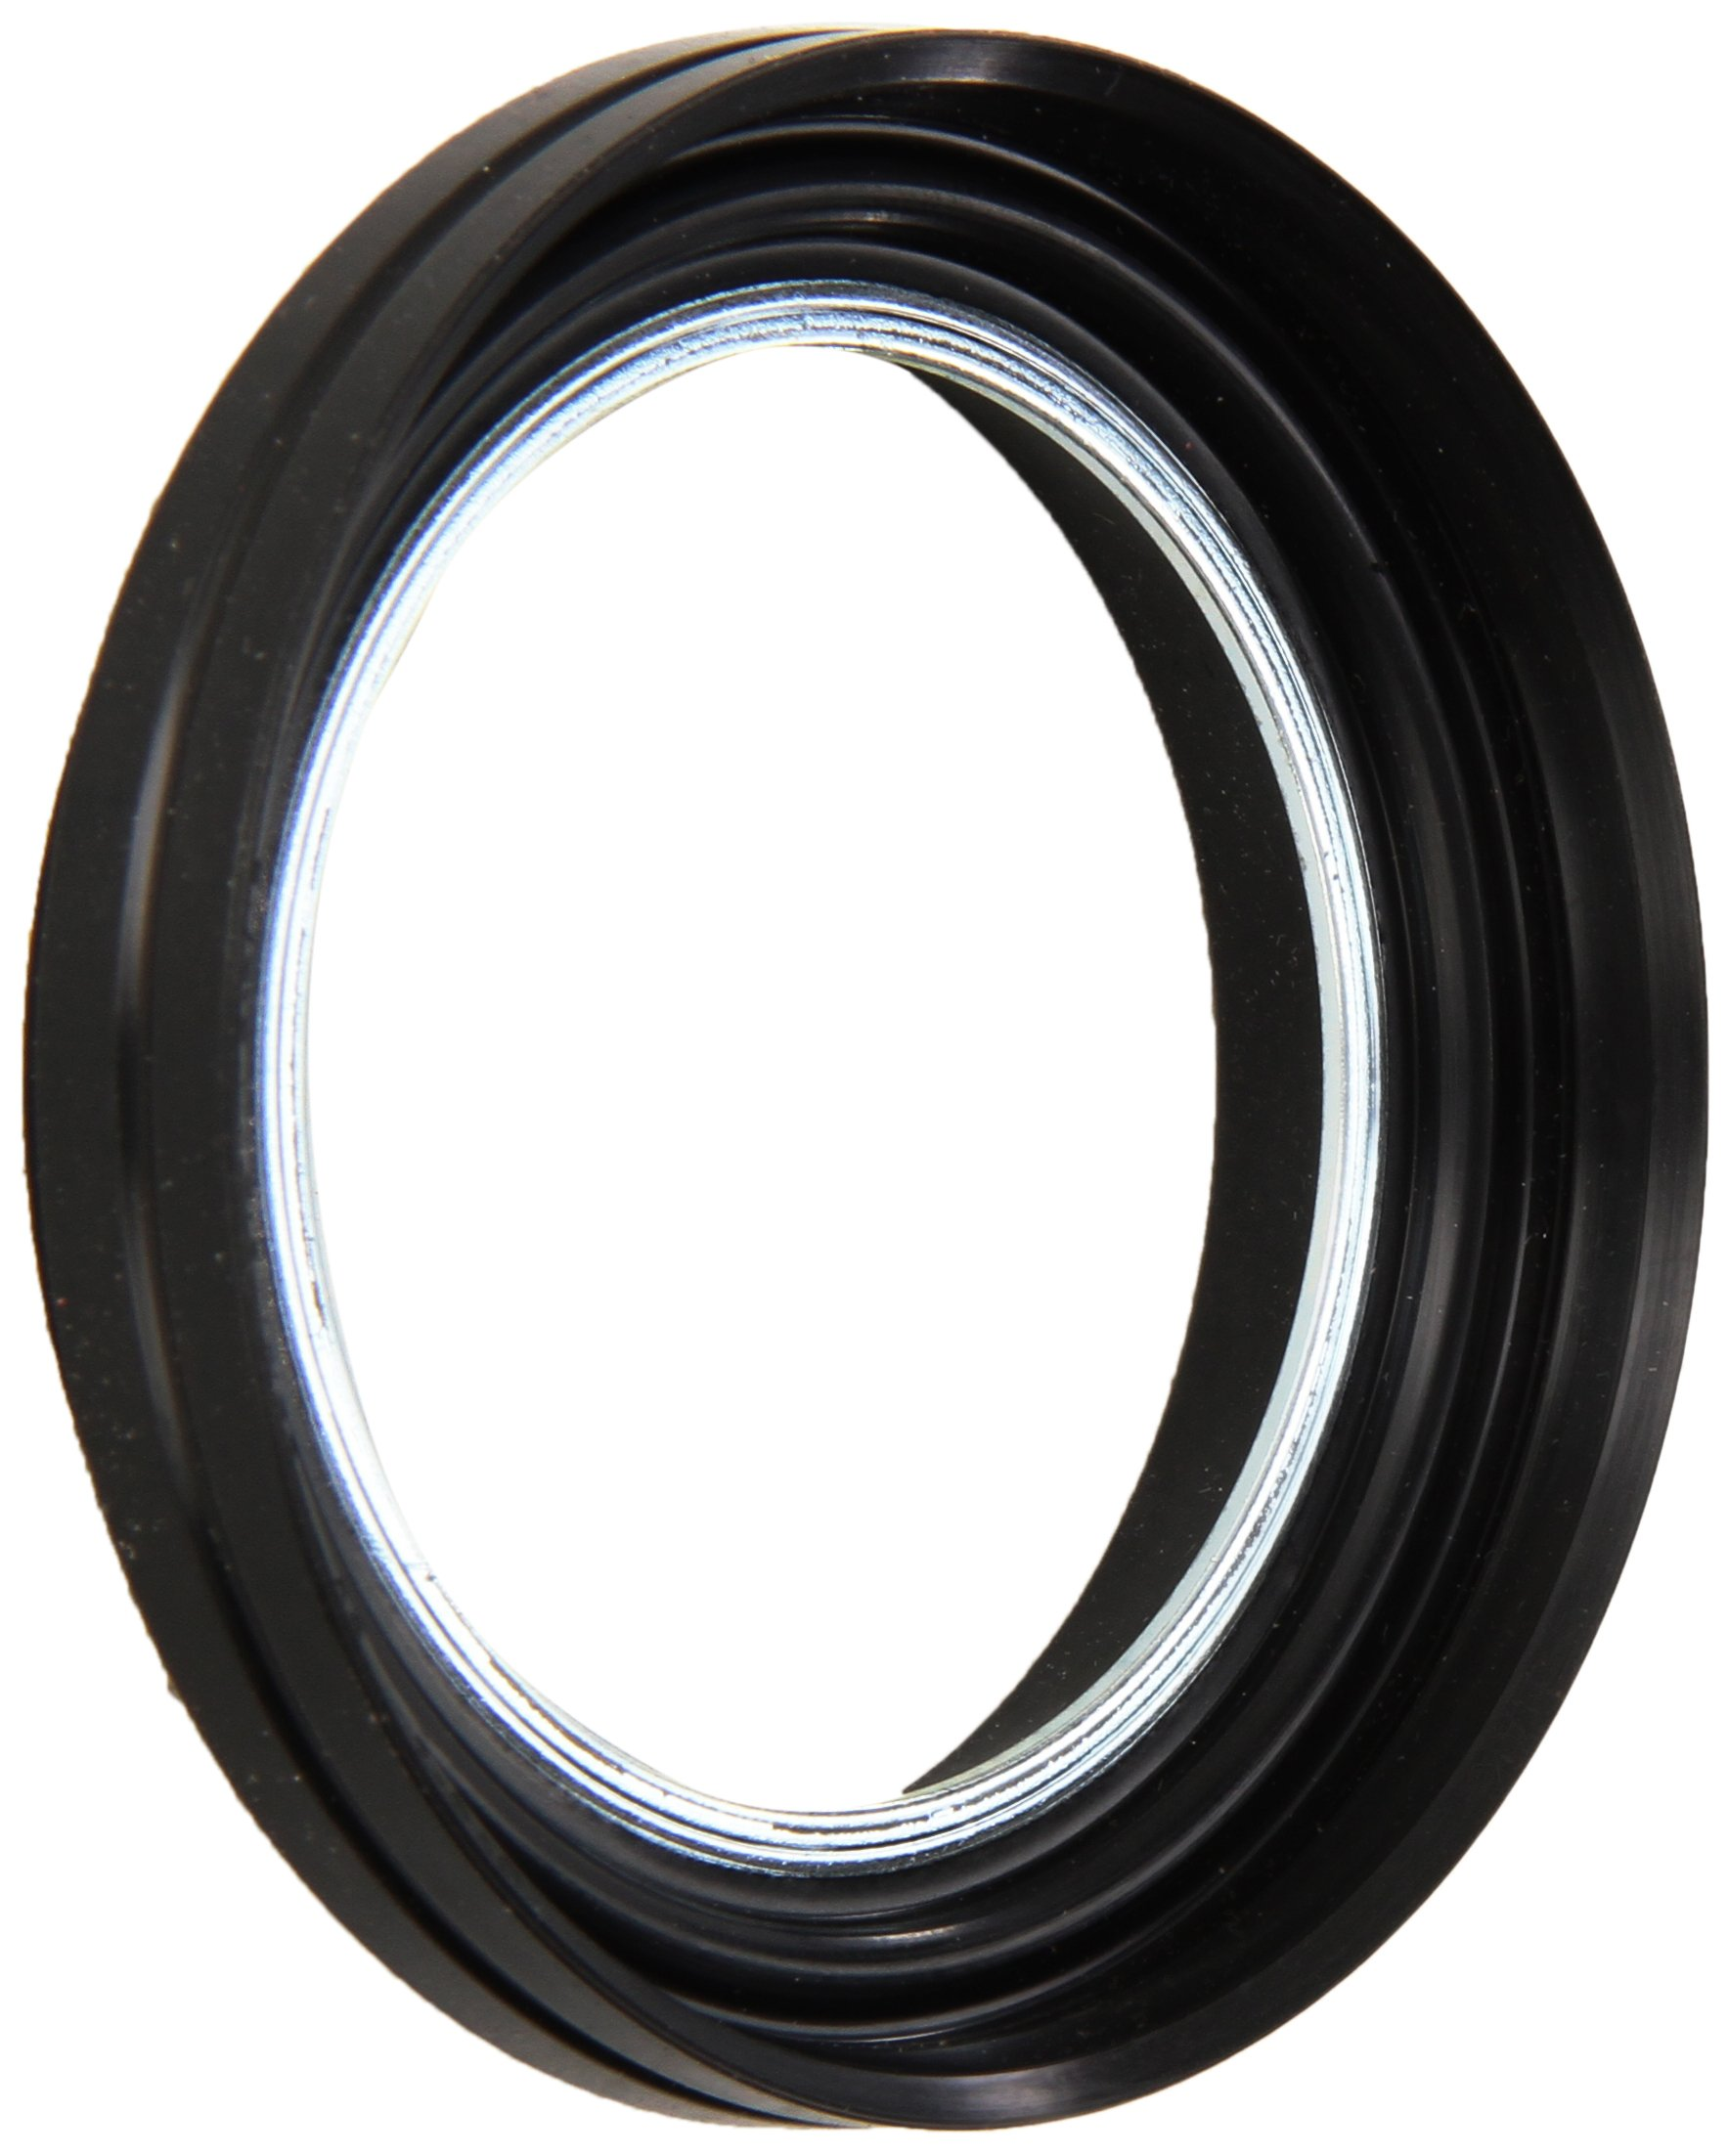 Precision 710413 Differential Pinion, Axle Shaft and Axle Spindle Seal